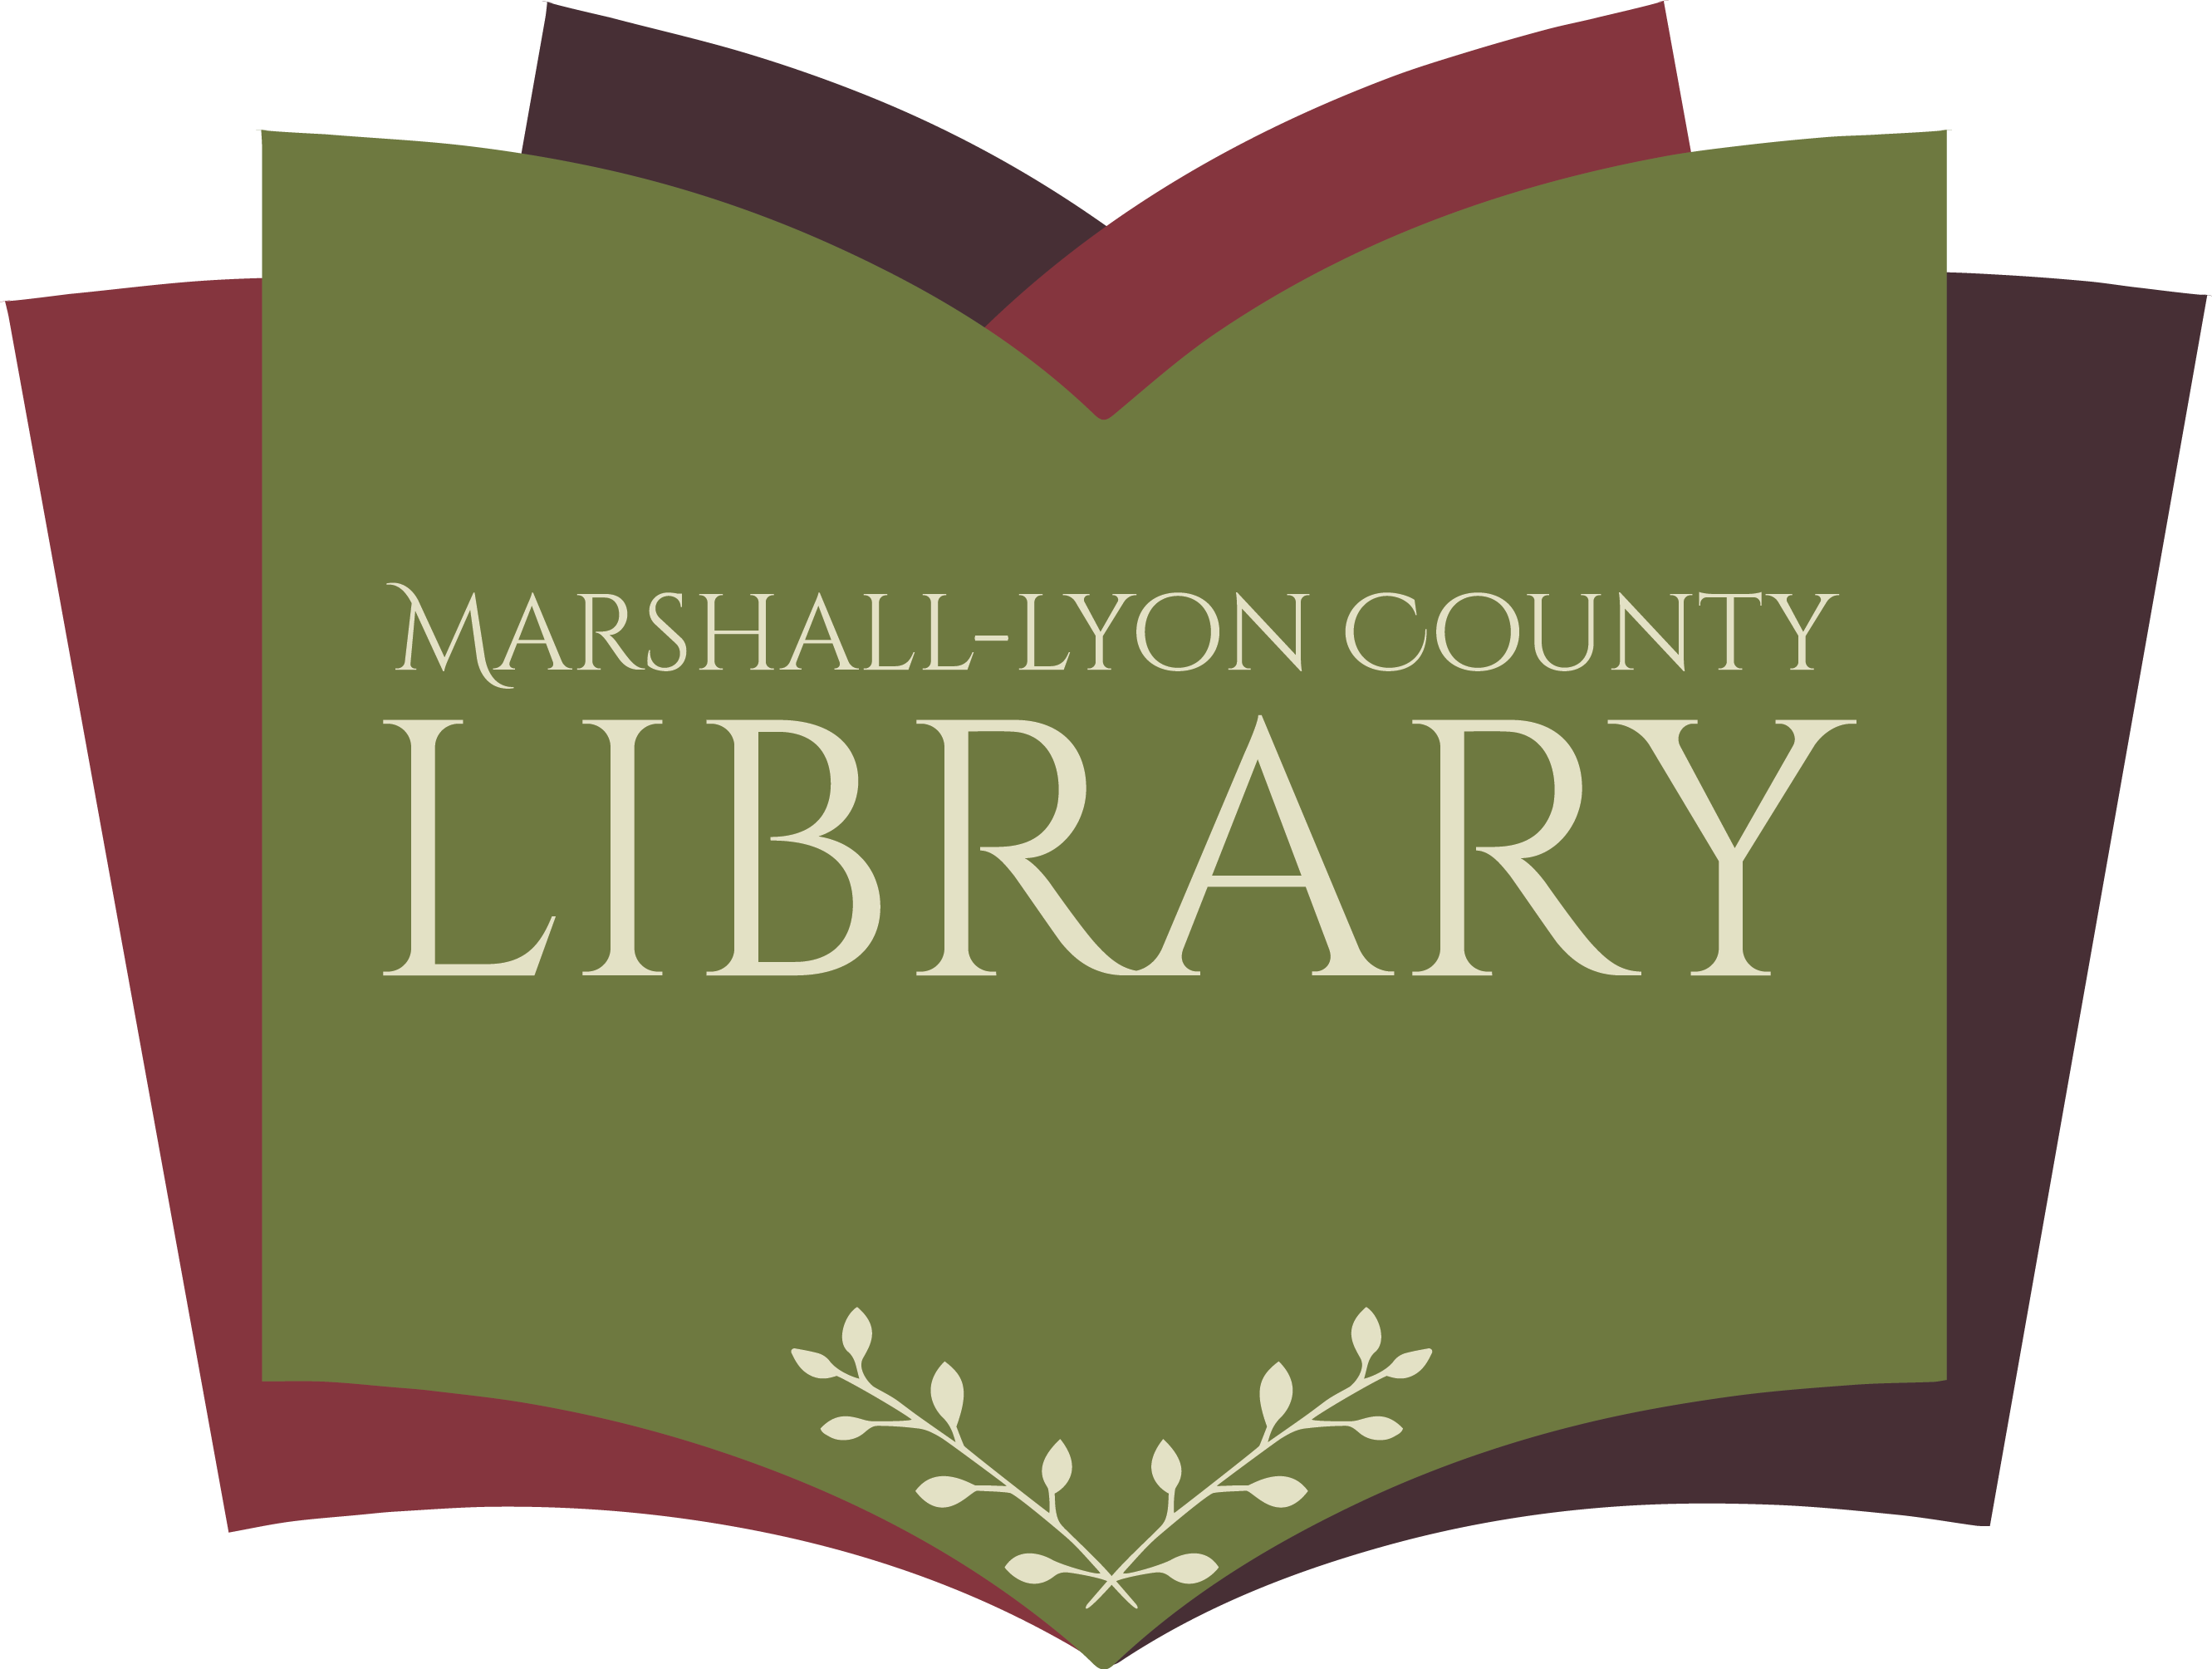 marshall-lyon-county-library